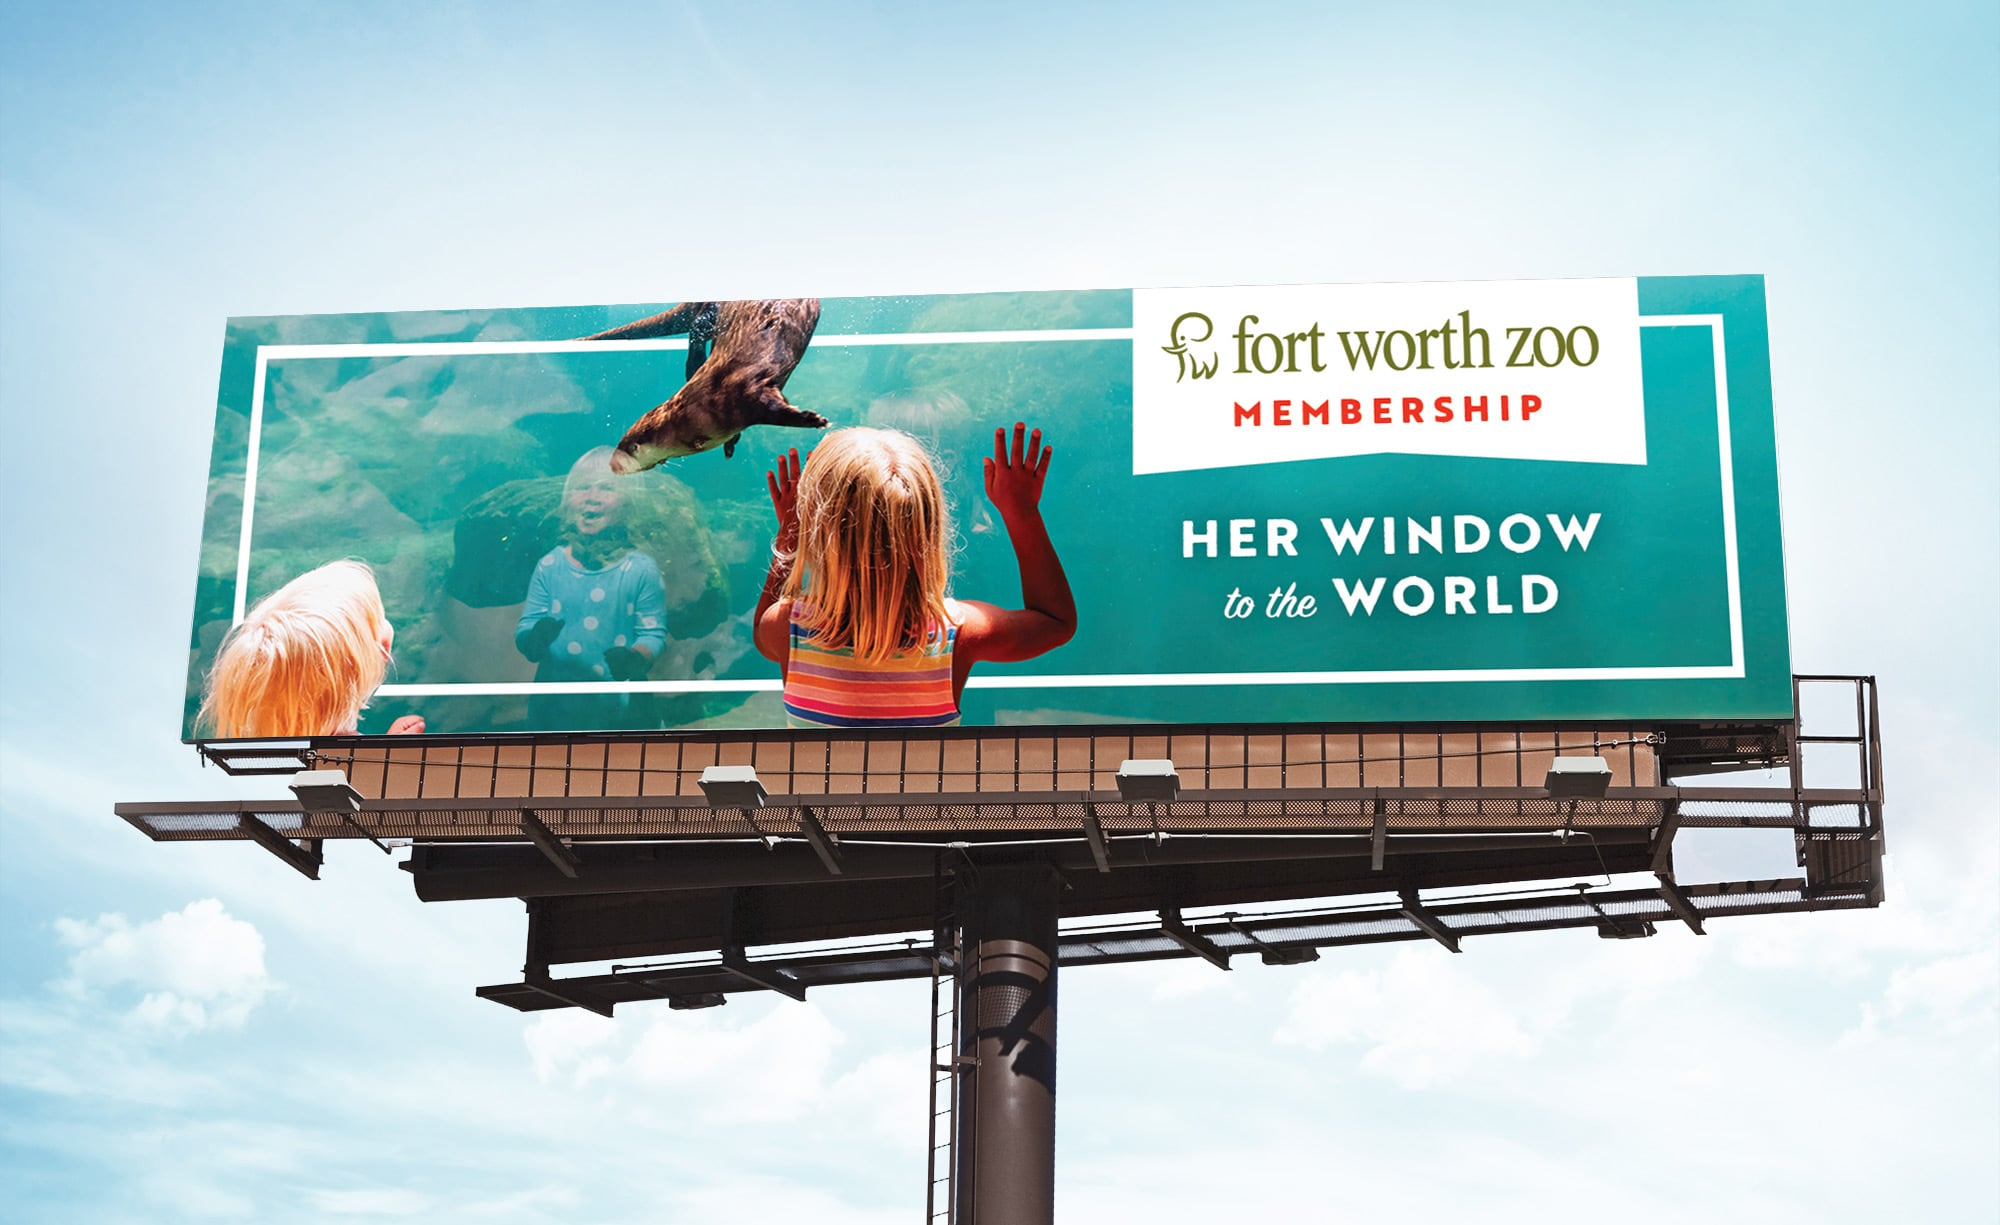 Fort Worth Zoo Membership Billboard